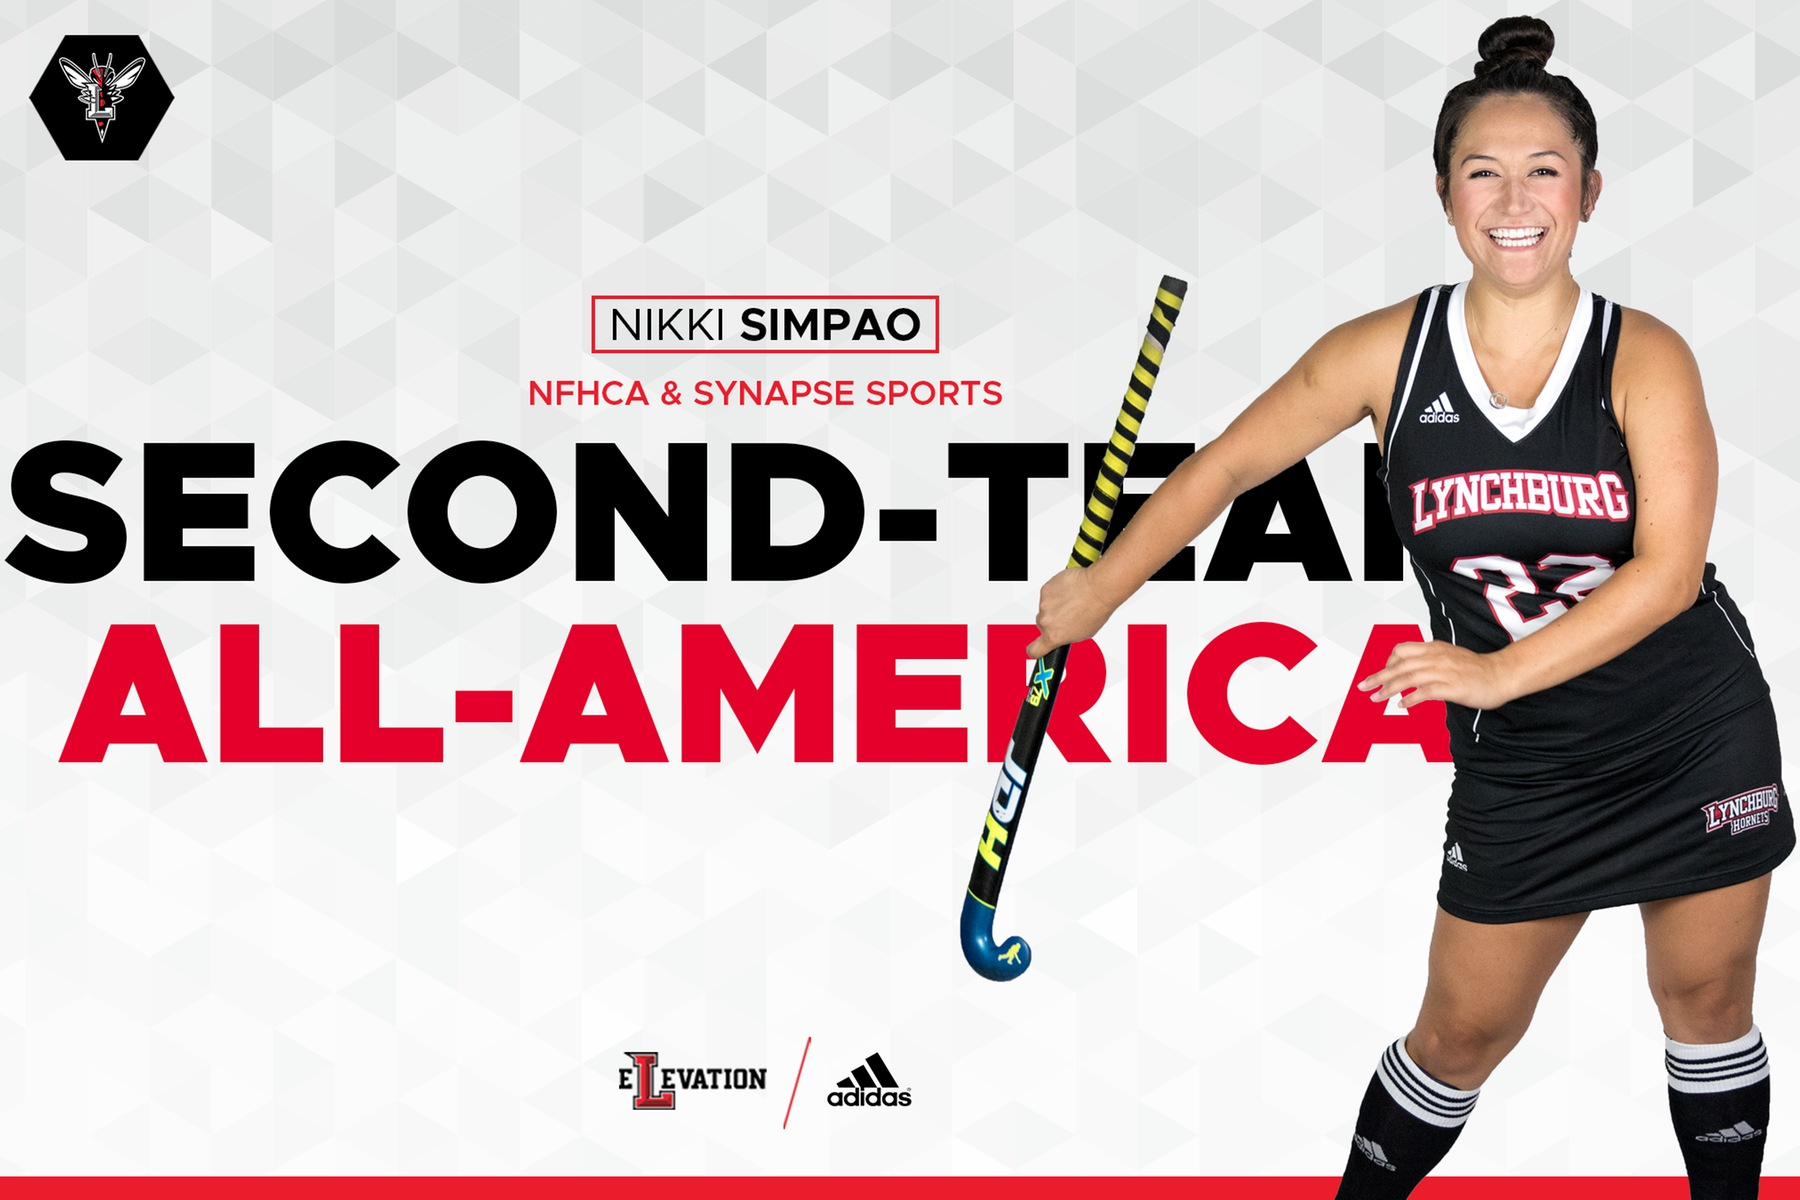 Nikki Simpao flossing with a field hockey stick on white background. Text: NFHCA & Synapse Sports Second-Team All-America